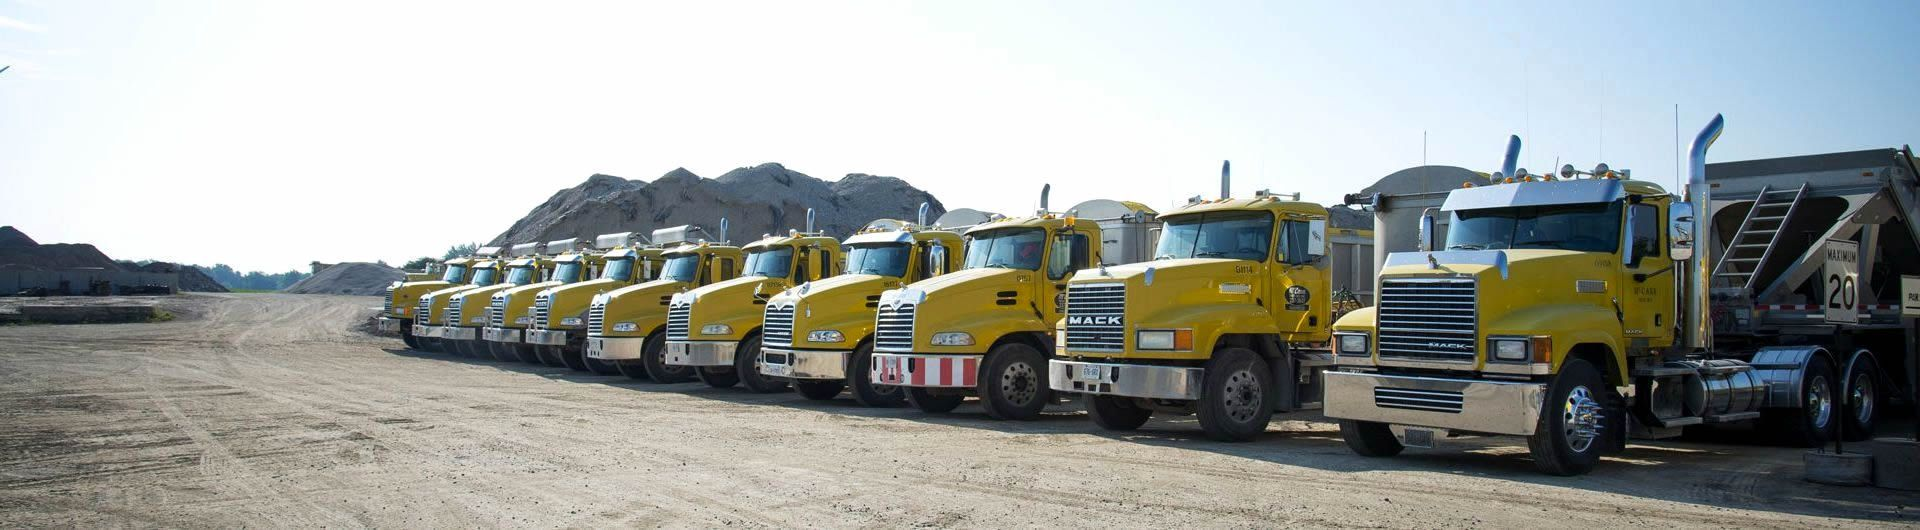 fleet of gravel trucks